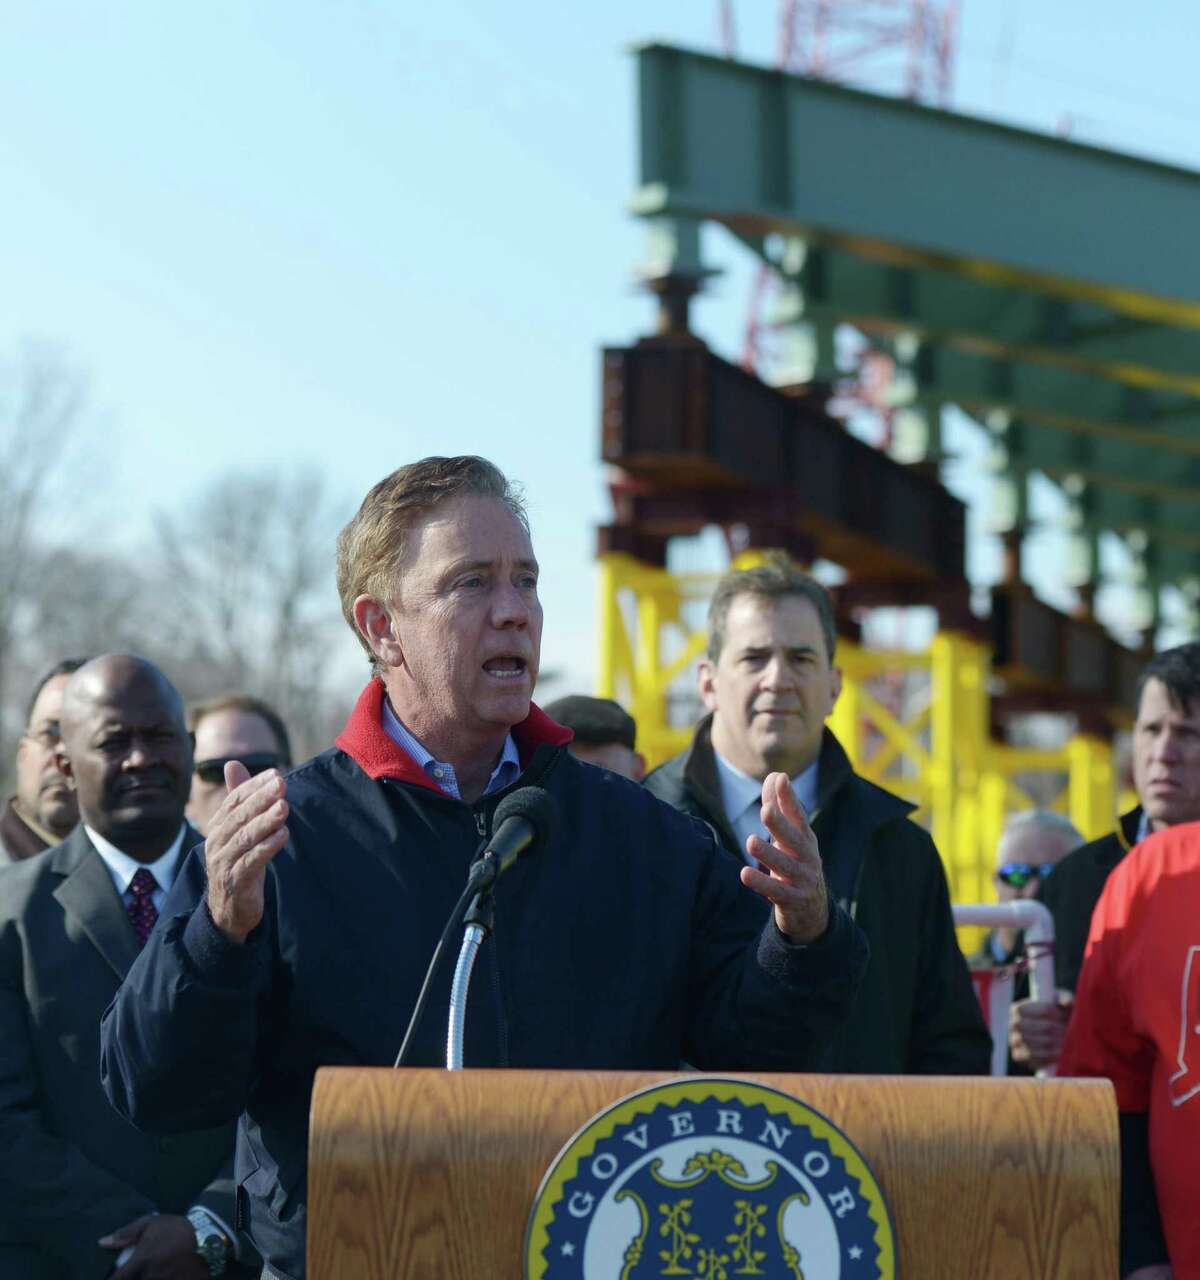 Connecticut Gov. Ned Lamont speaks about the new overpass being built spanning I-95's Exit 9 in Stamford, Conn. Monday, March 11, 2019. Connecticut Gov. Ned Lamont joined Stamford Mayor David Martin to talk about the replacement of the bridge that spans across I-95 at East Main Street and the importance of investing in the state's infrastructure.